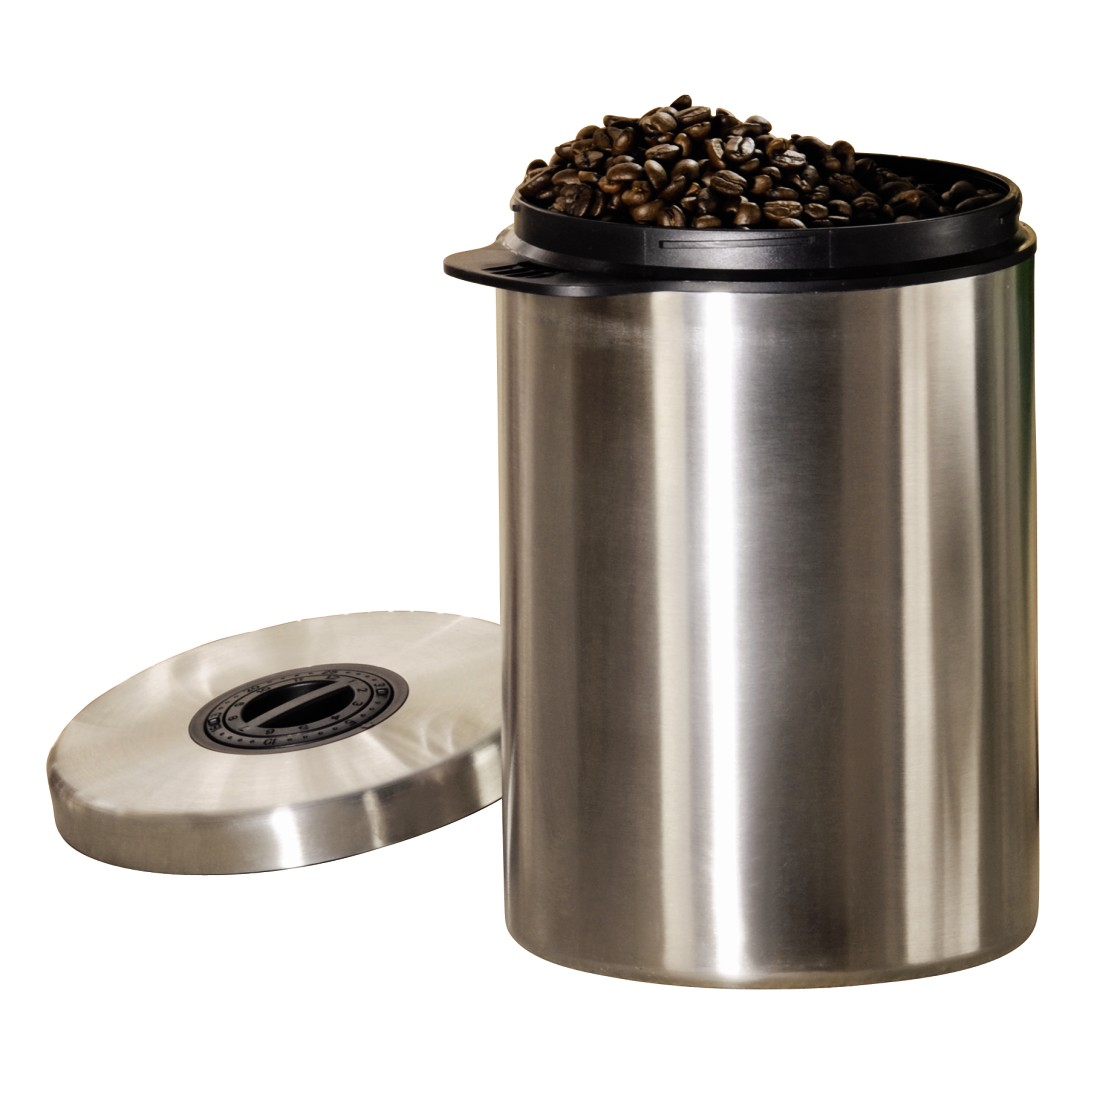 awx3 High-Res Appliance 3 - Xavax, Stainless Steel Container for 1 kg of Coffee Beans